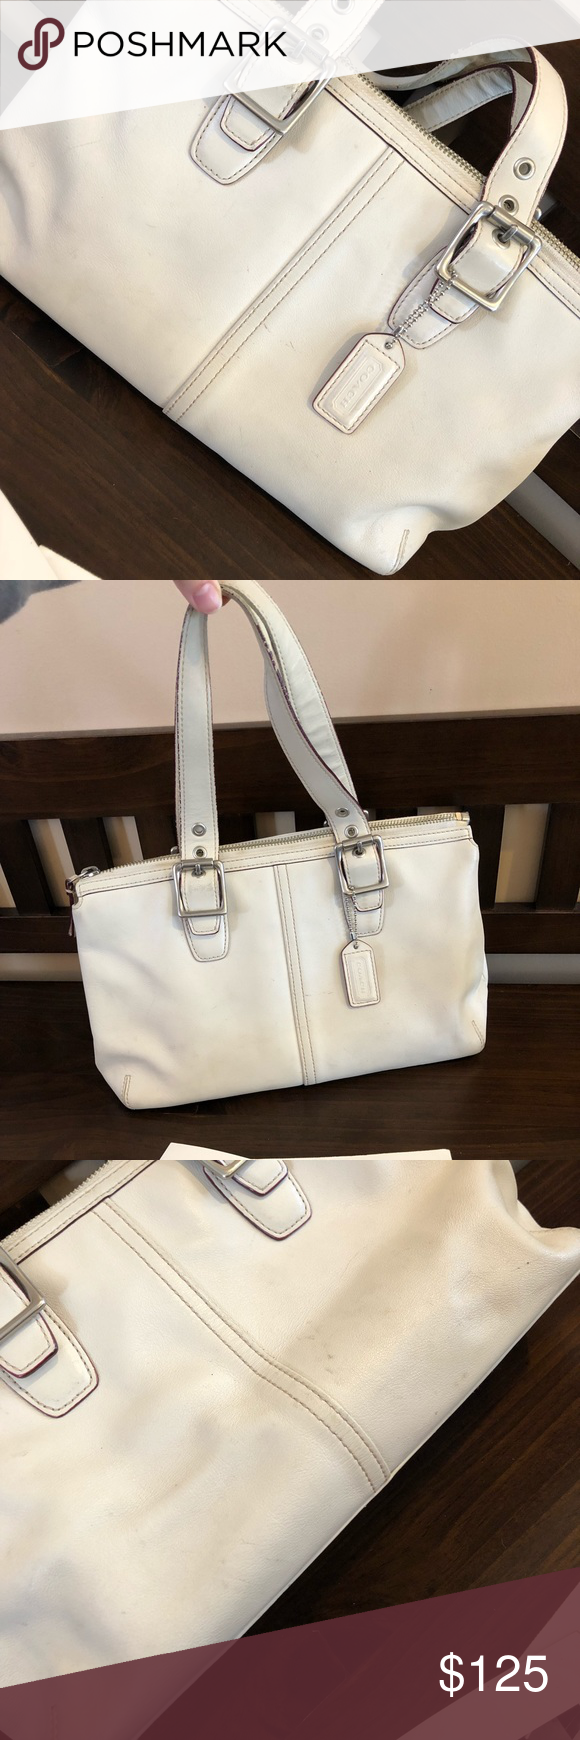 0934448d7d ... italy 100 authentic coach white leather tote handbag white leather  coach tote bag pre acd4e 84f51